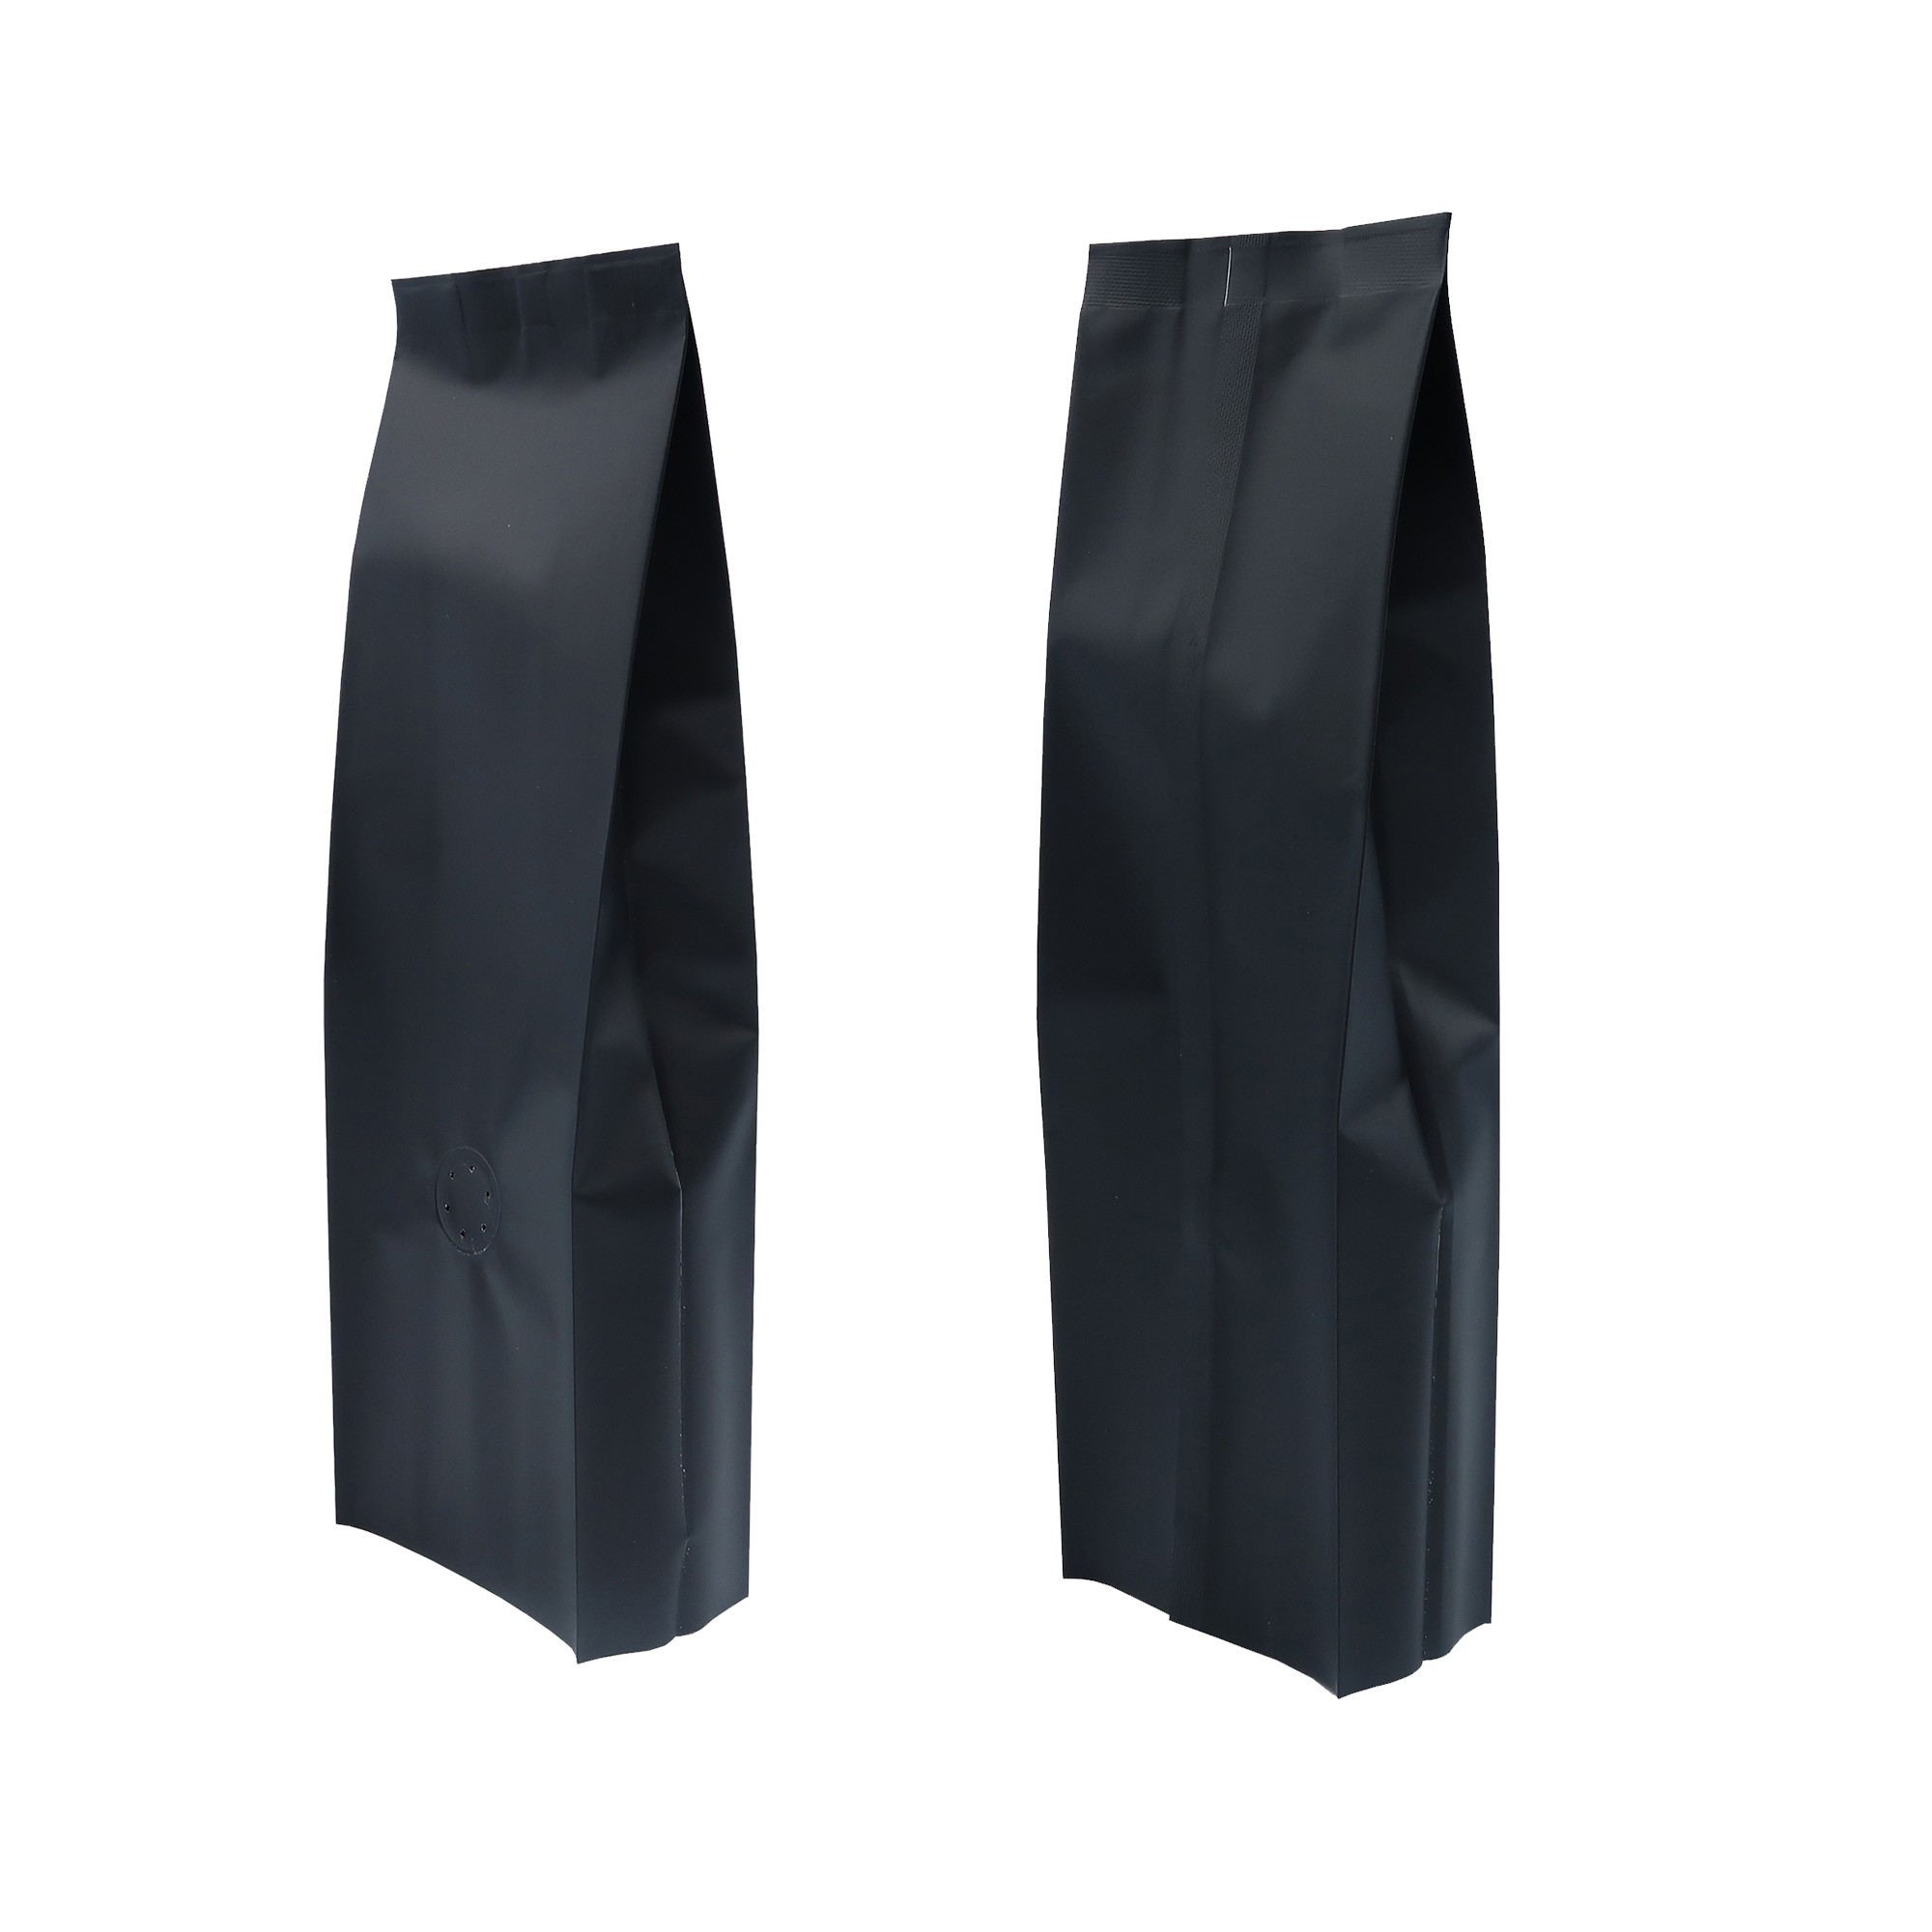 8oz Matte Black Side Gusseted Coffee Storage Aluminum Bags with Degassing Valve (100 Bags/Lot)